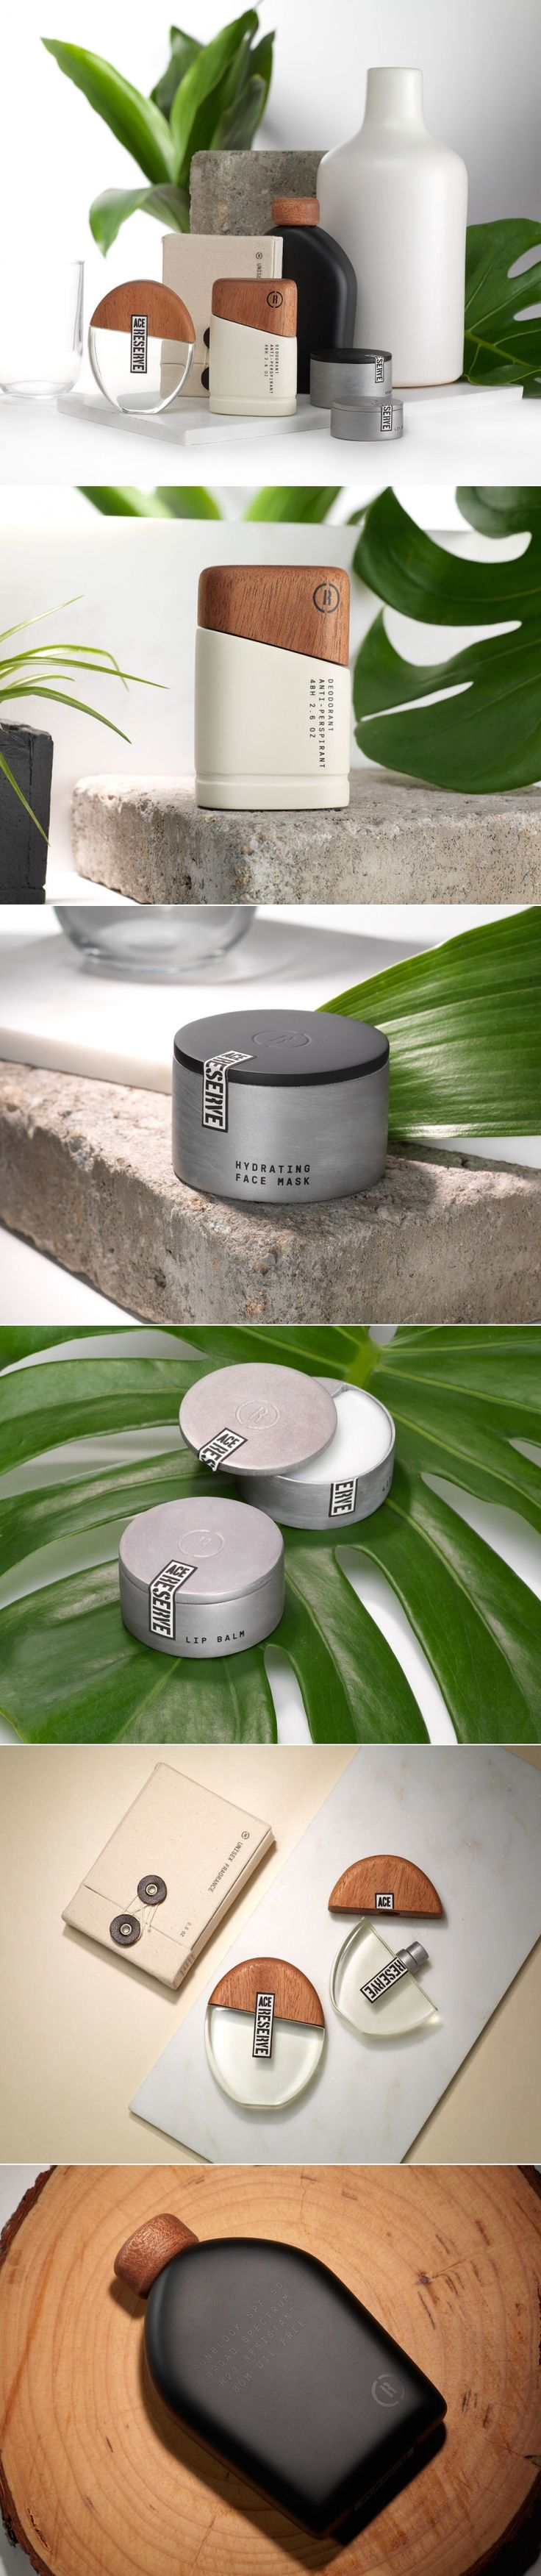 What if the Ace Hotel's Rooms Came Stocked With Their Own Line of Beauty Products? — The Dieline | Packaging & Branding Design & Innovation News